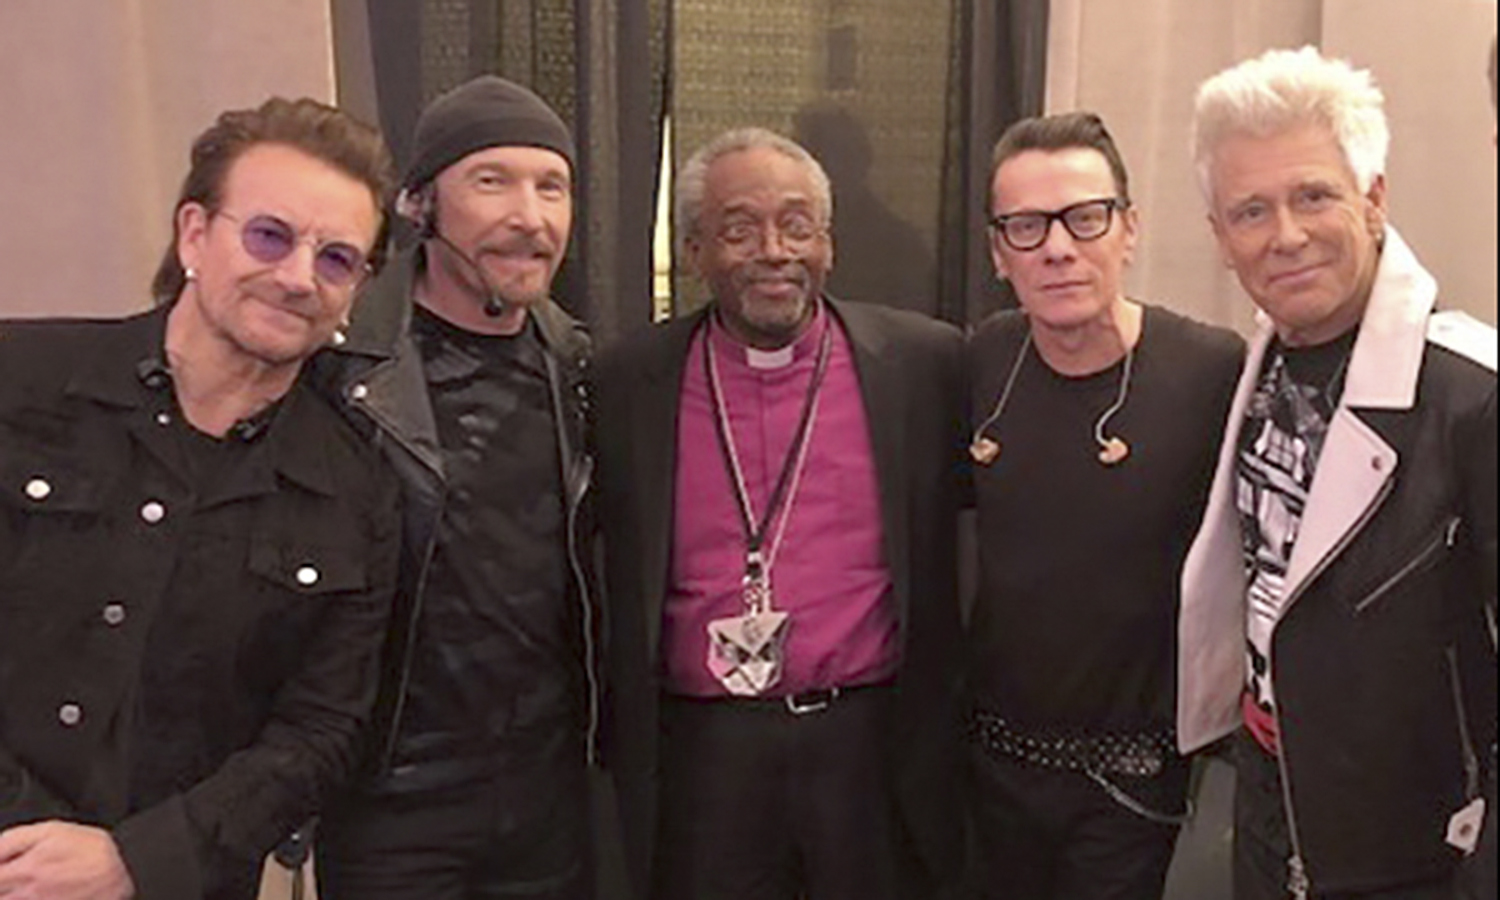 The Most Rev. Michael B. Curry '75 meets backstage with members of U2 after a concert at Madison Square Garden.